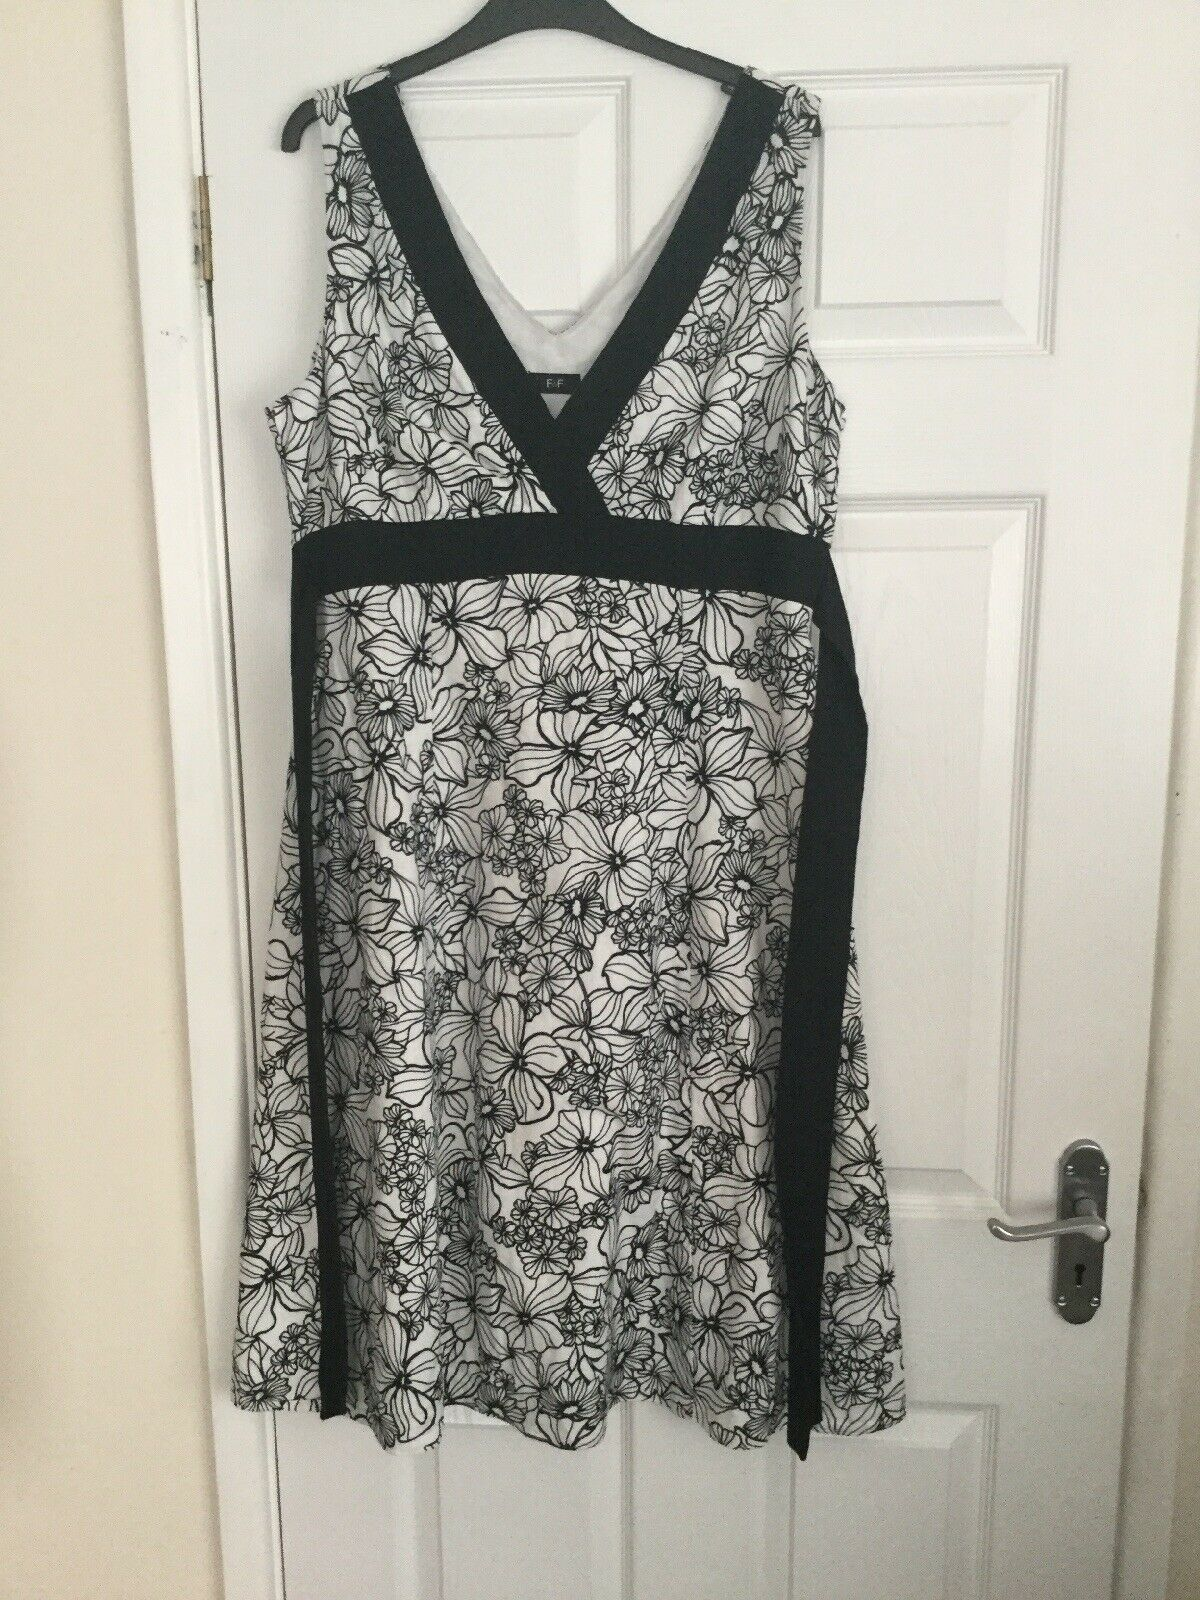 LADIES SIZE 16 LINEN BLEND DRESS BLACK & WHITE FLORAL PRINT